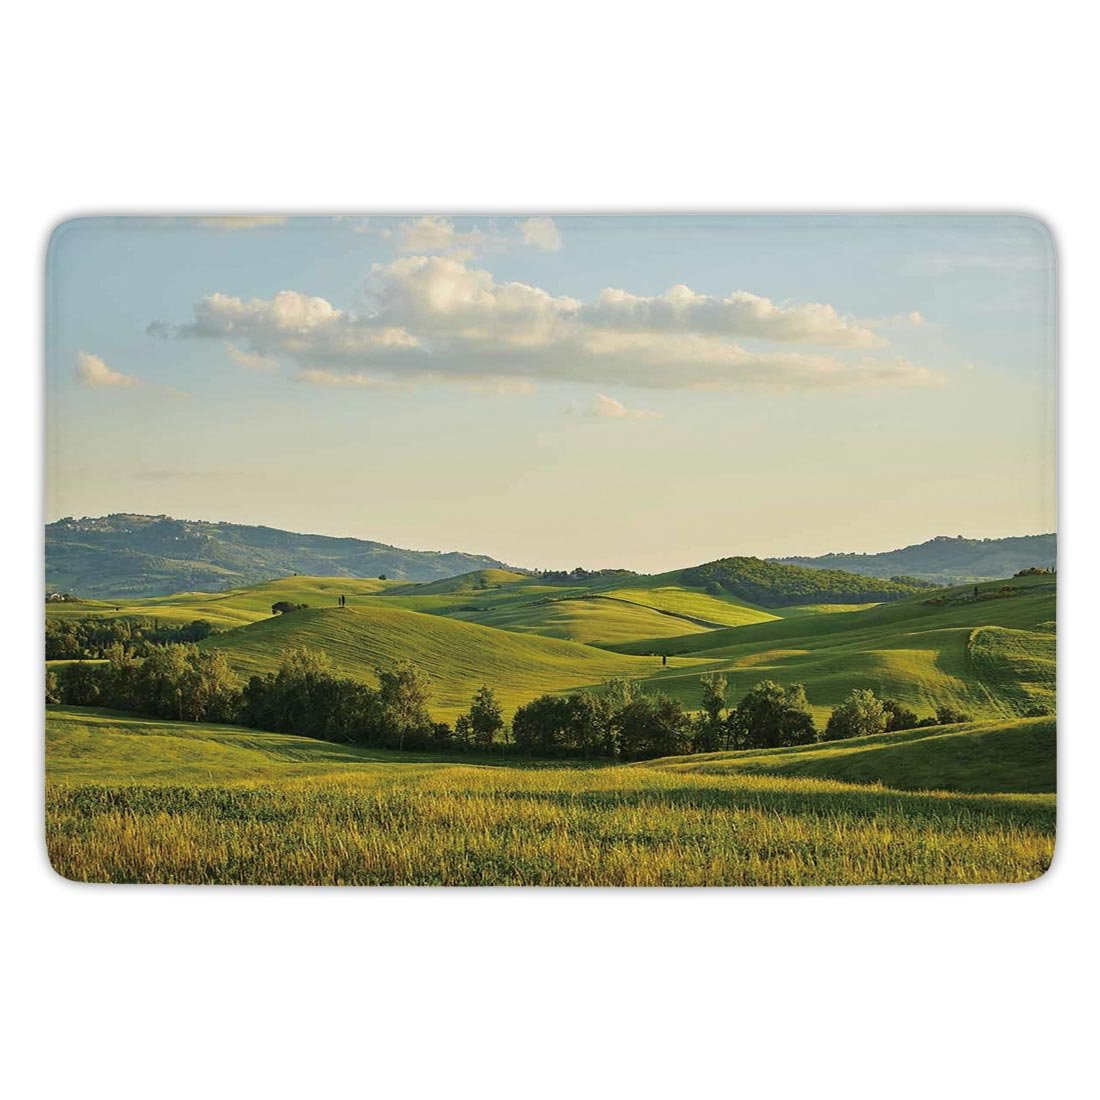 Bathroom Bath Rug Kitchen Floor Mat Carpet,Country,Tuscany Hills Italy Meadow Greenery Pastoral Rural Scenery Farmland Scenic,Green Light Blue,Flannel Microfiber Non-slip Soft Absorbent